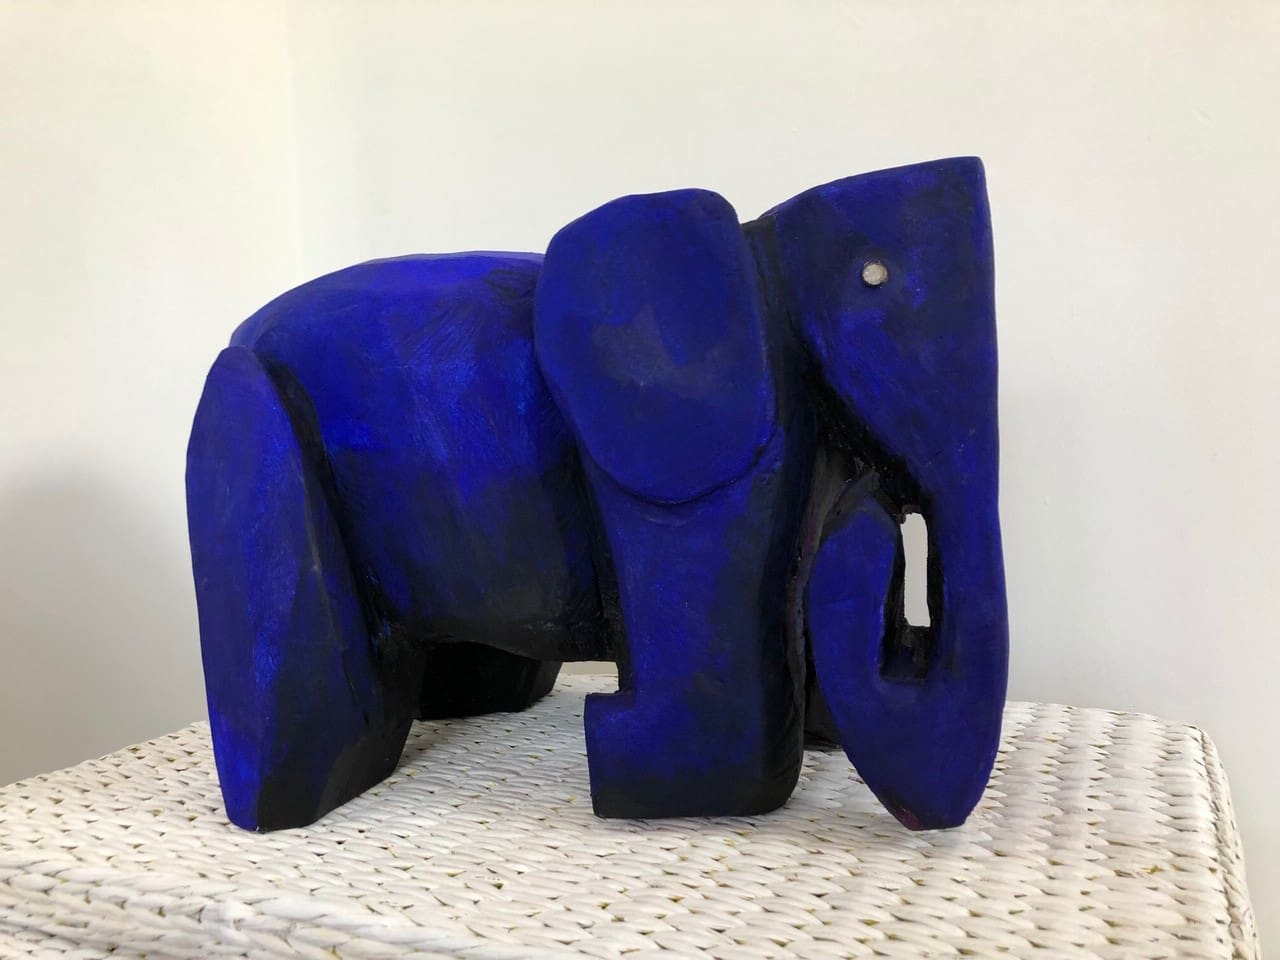 The blue elephant is one of the sculptures that live at the gallery :)